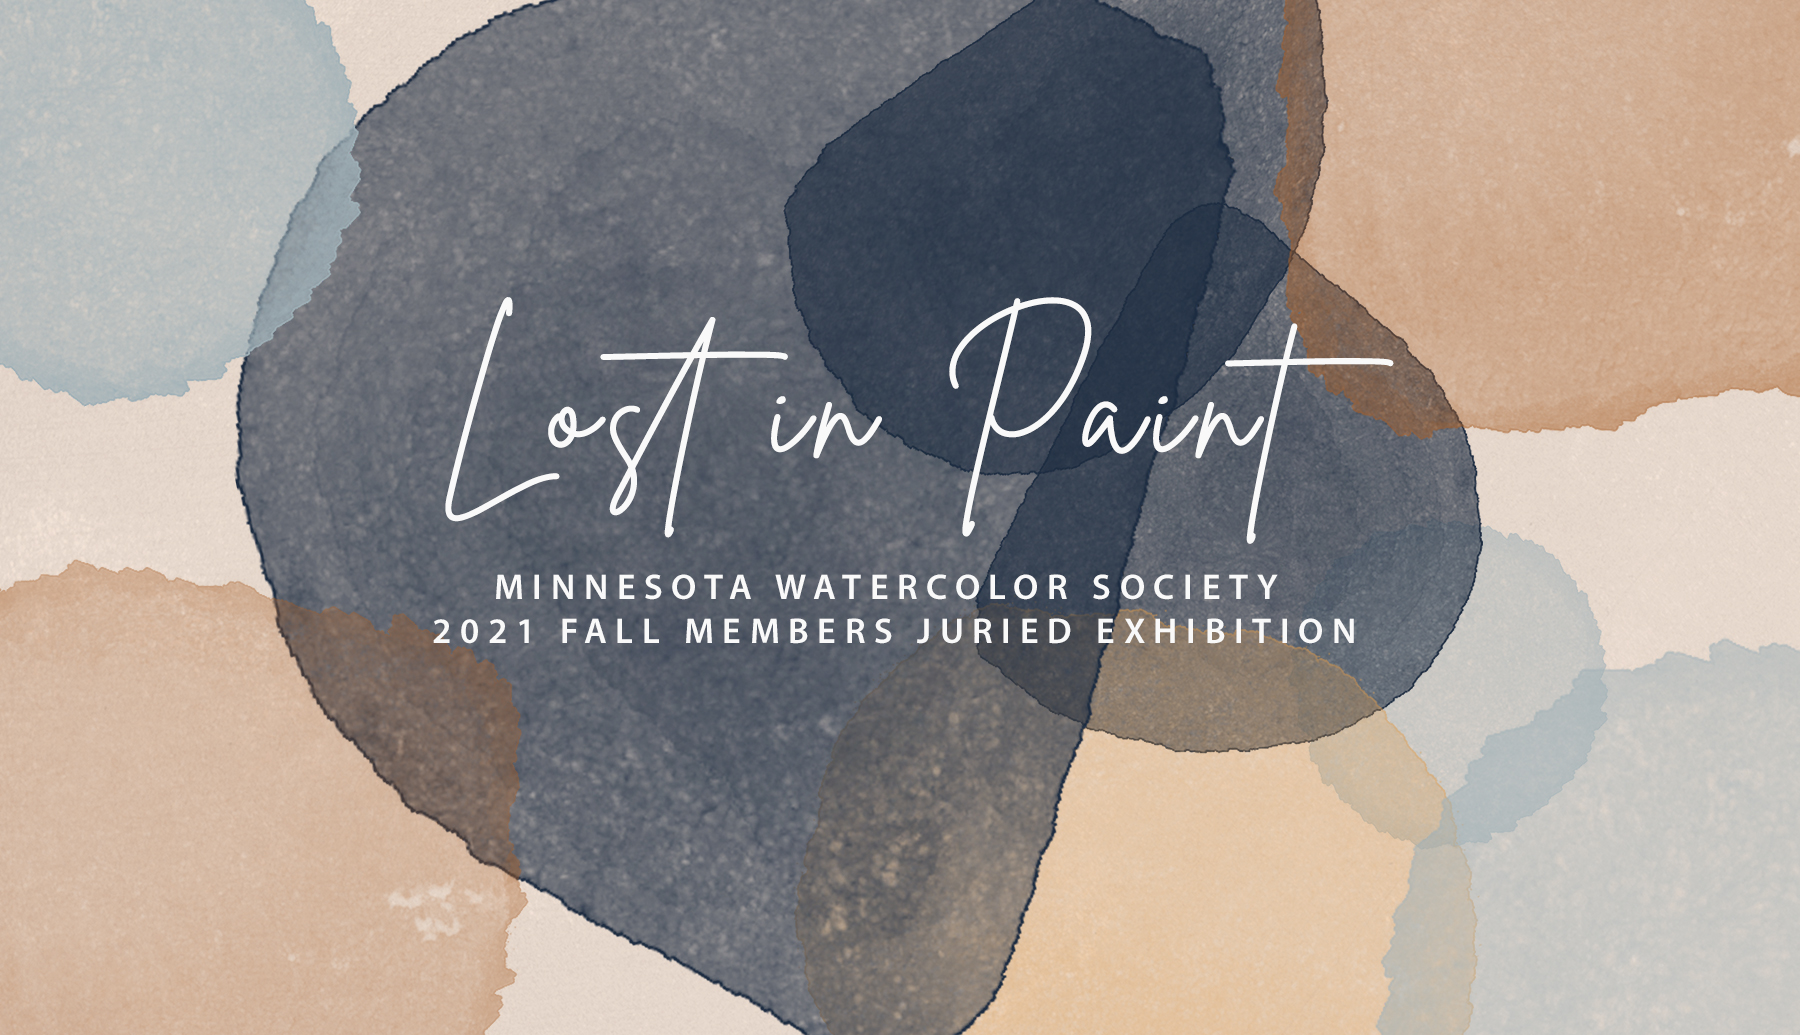 minnesota-watercolor-society-lost-in-paint-fall-member-exhibition